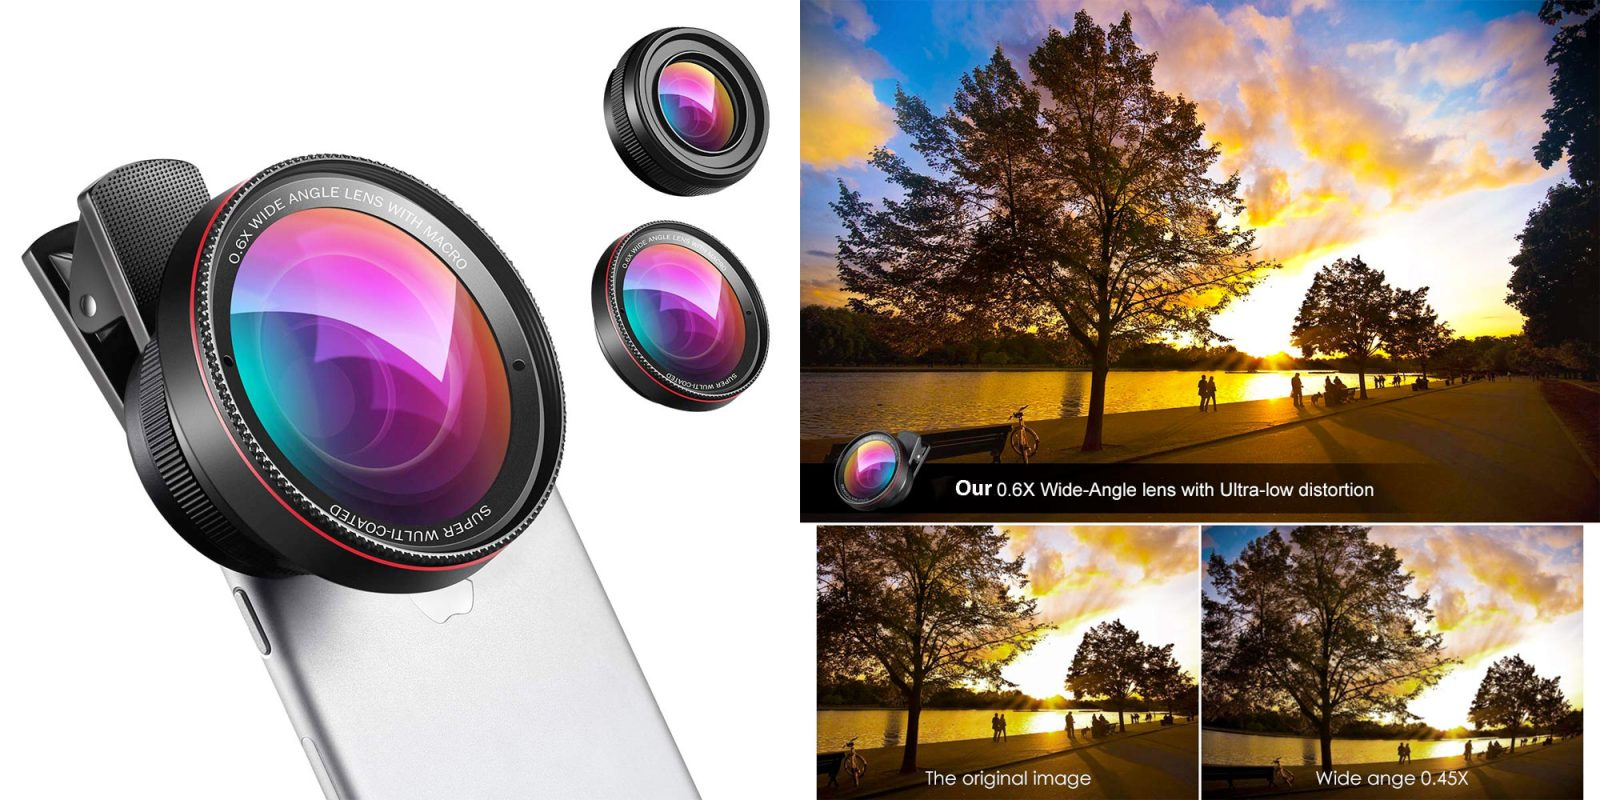 Save 60% on this 2-in-1 iPhone camera lens kit and up your photo game at $6.50